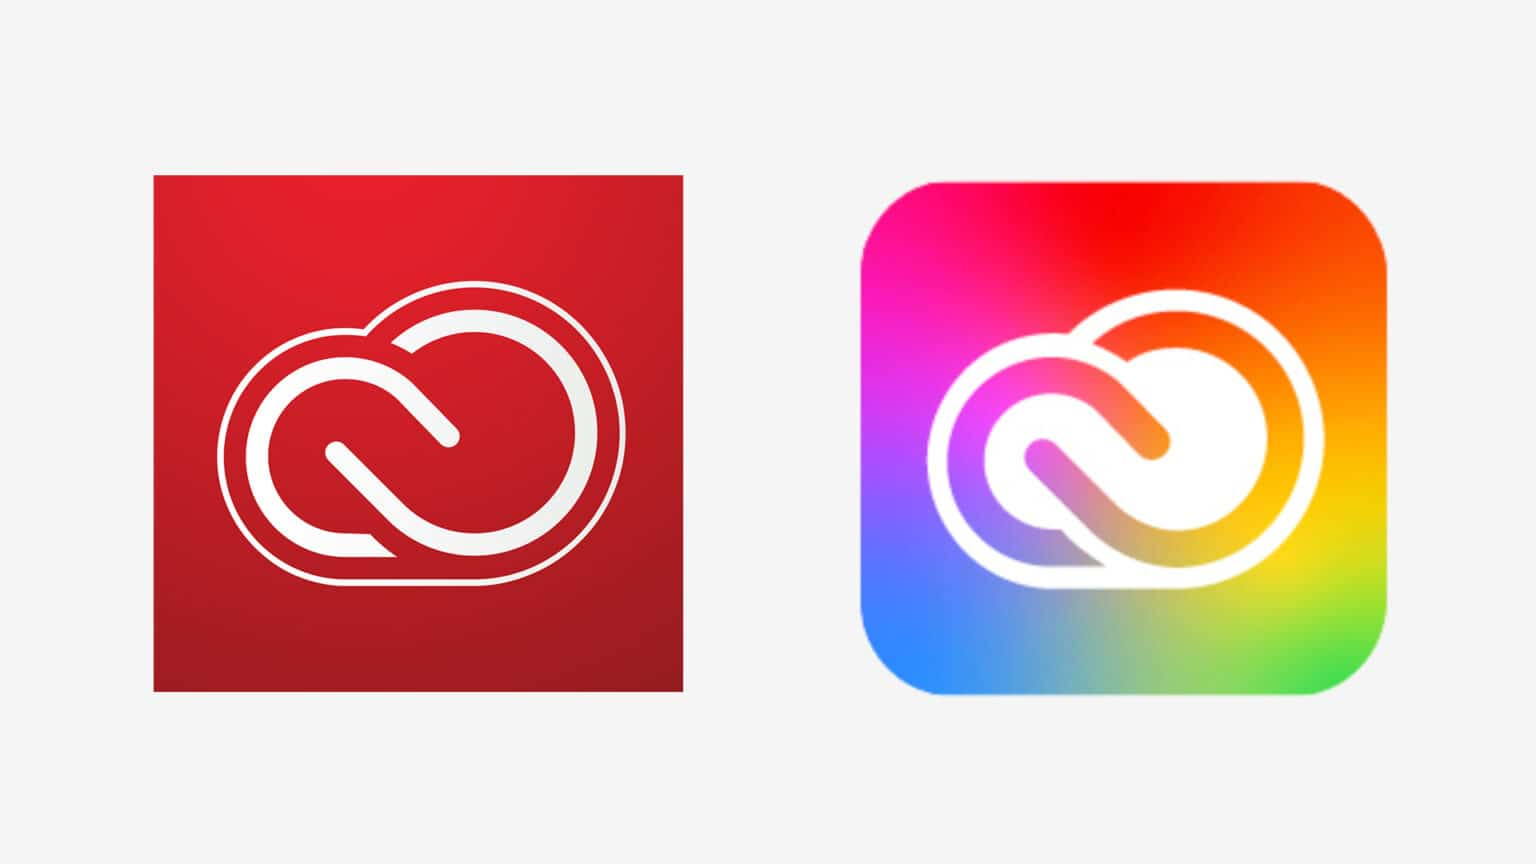 Adobe cloud icon redesign